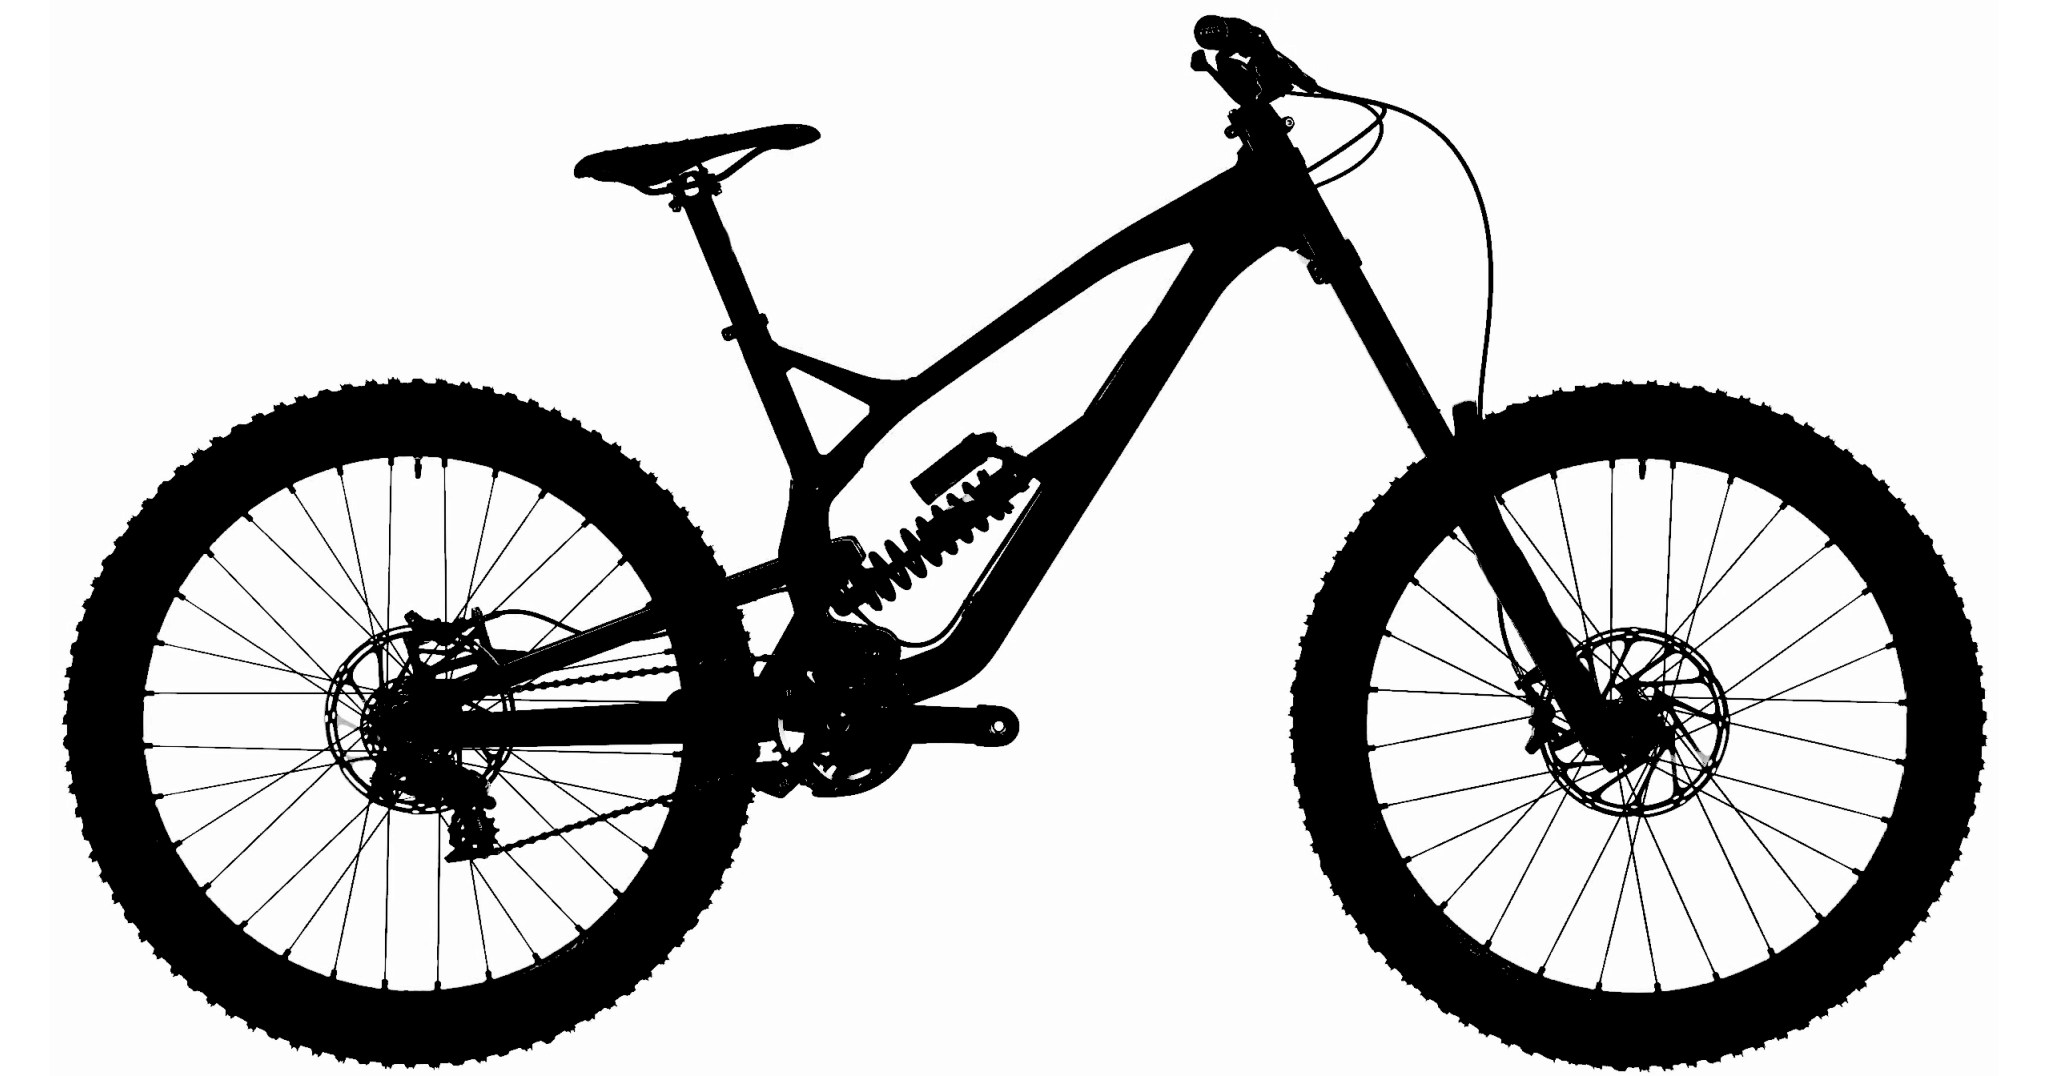 2048x1076 Guess The Downhill Bike From Its Silhouette Tattoo Ideas